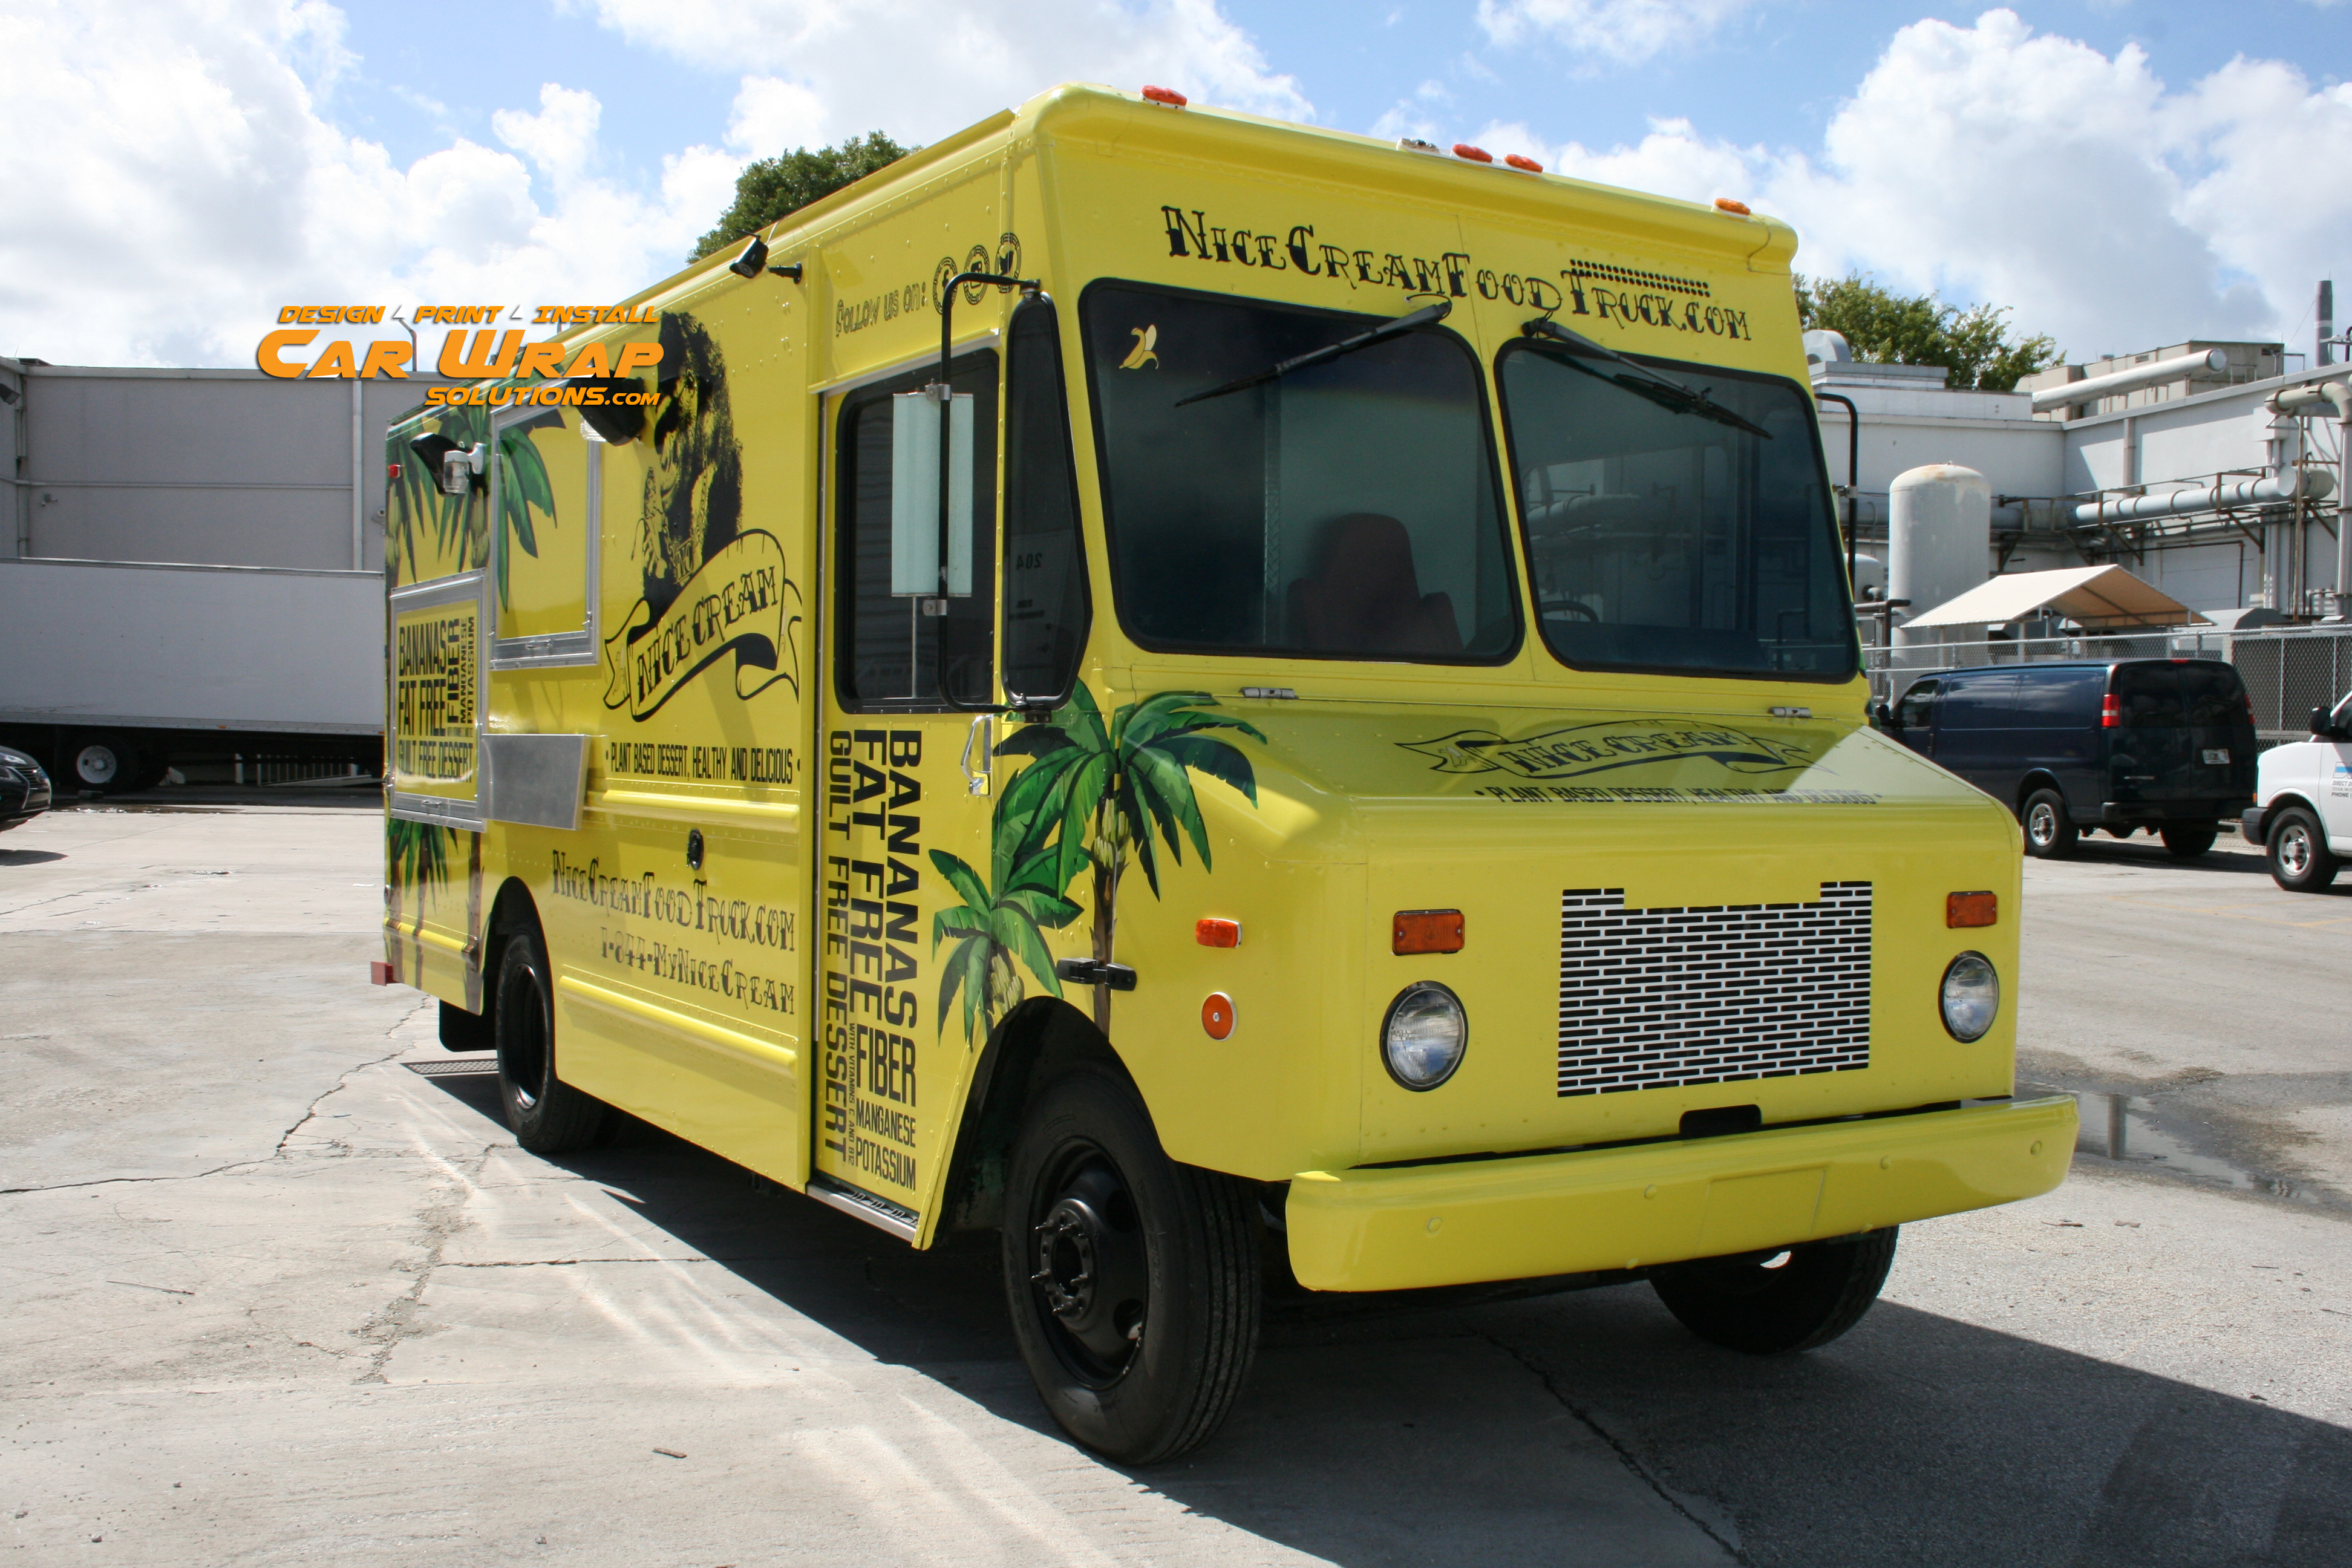 Car Wrap Solutions Knows How To Design Your Food Truck Wrap